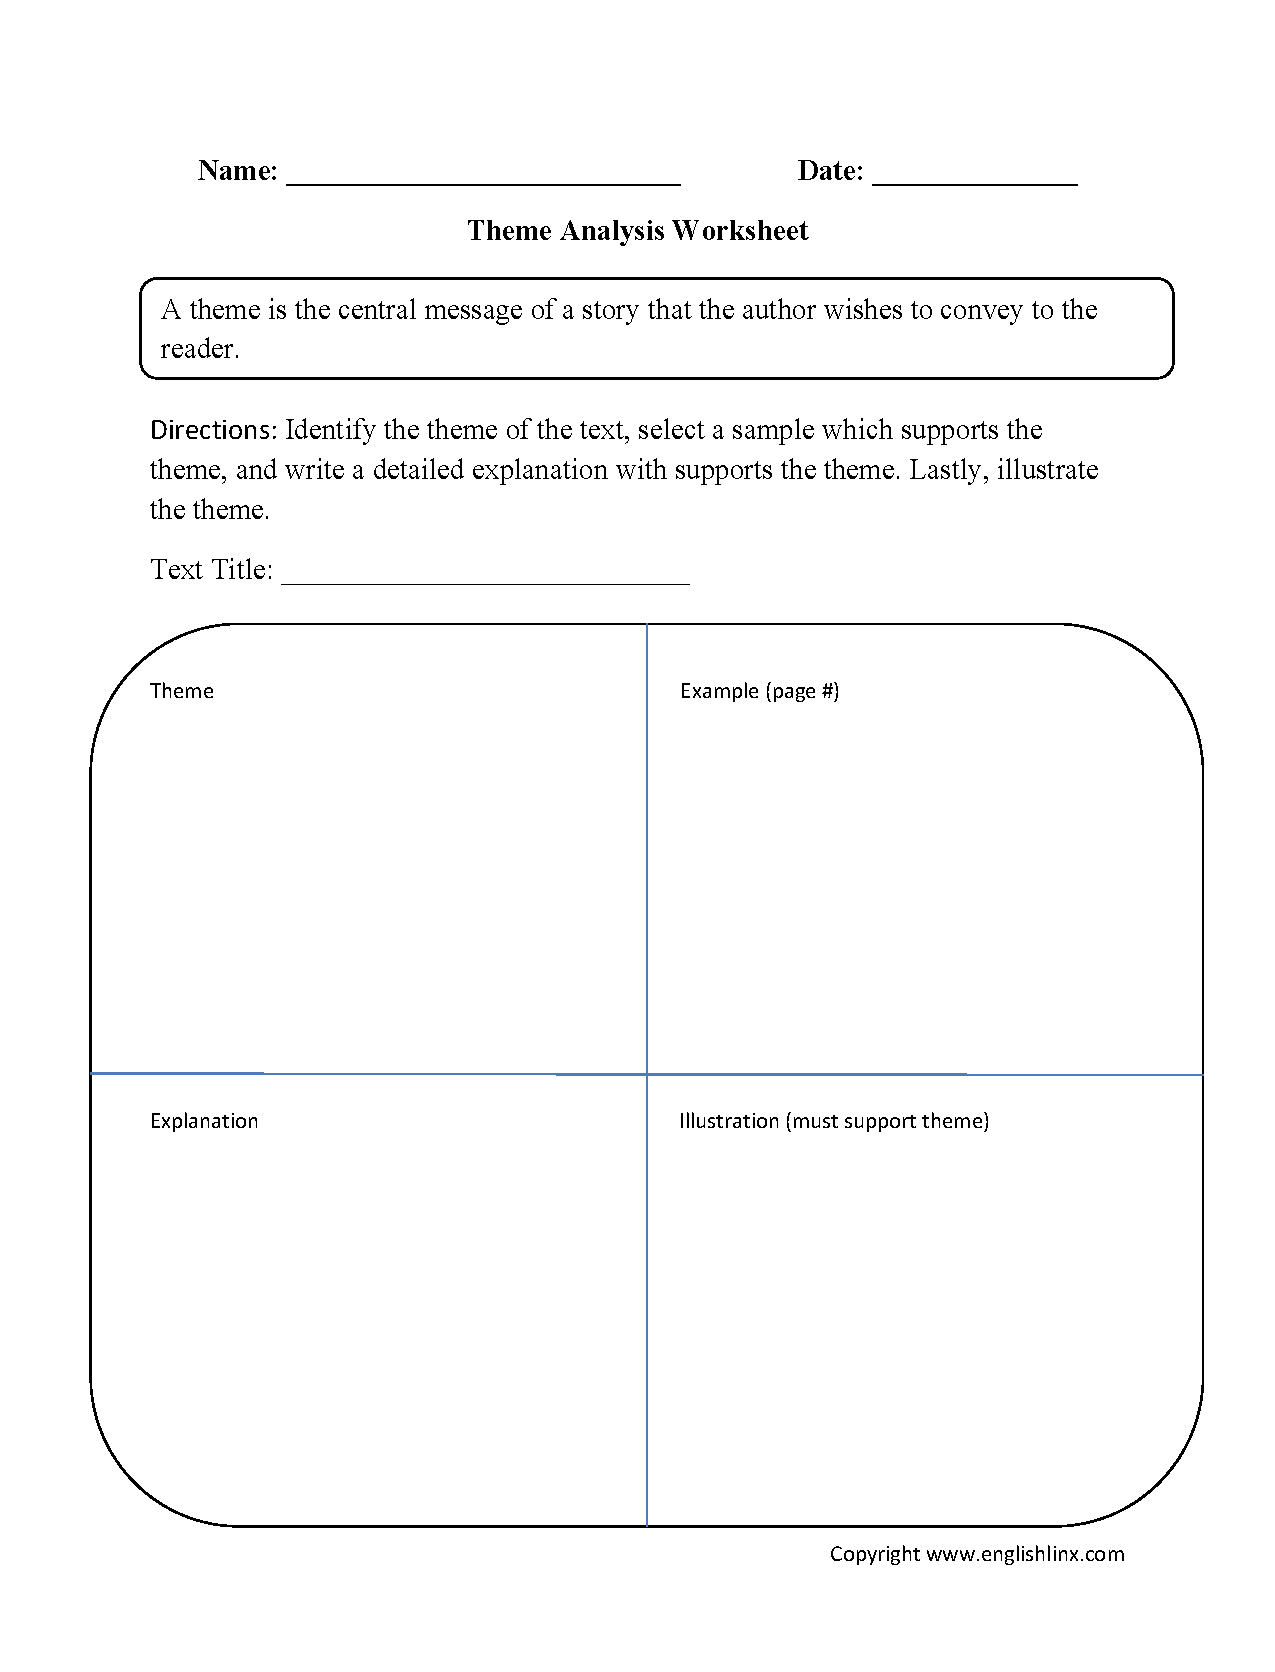 Theme Worksheets   Text structure worksheets [ 1672 x 1275 Pixel ]